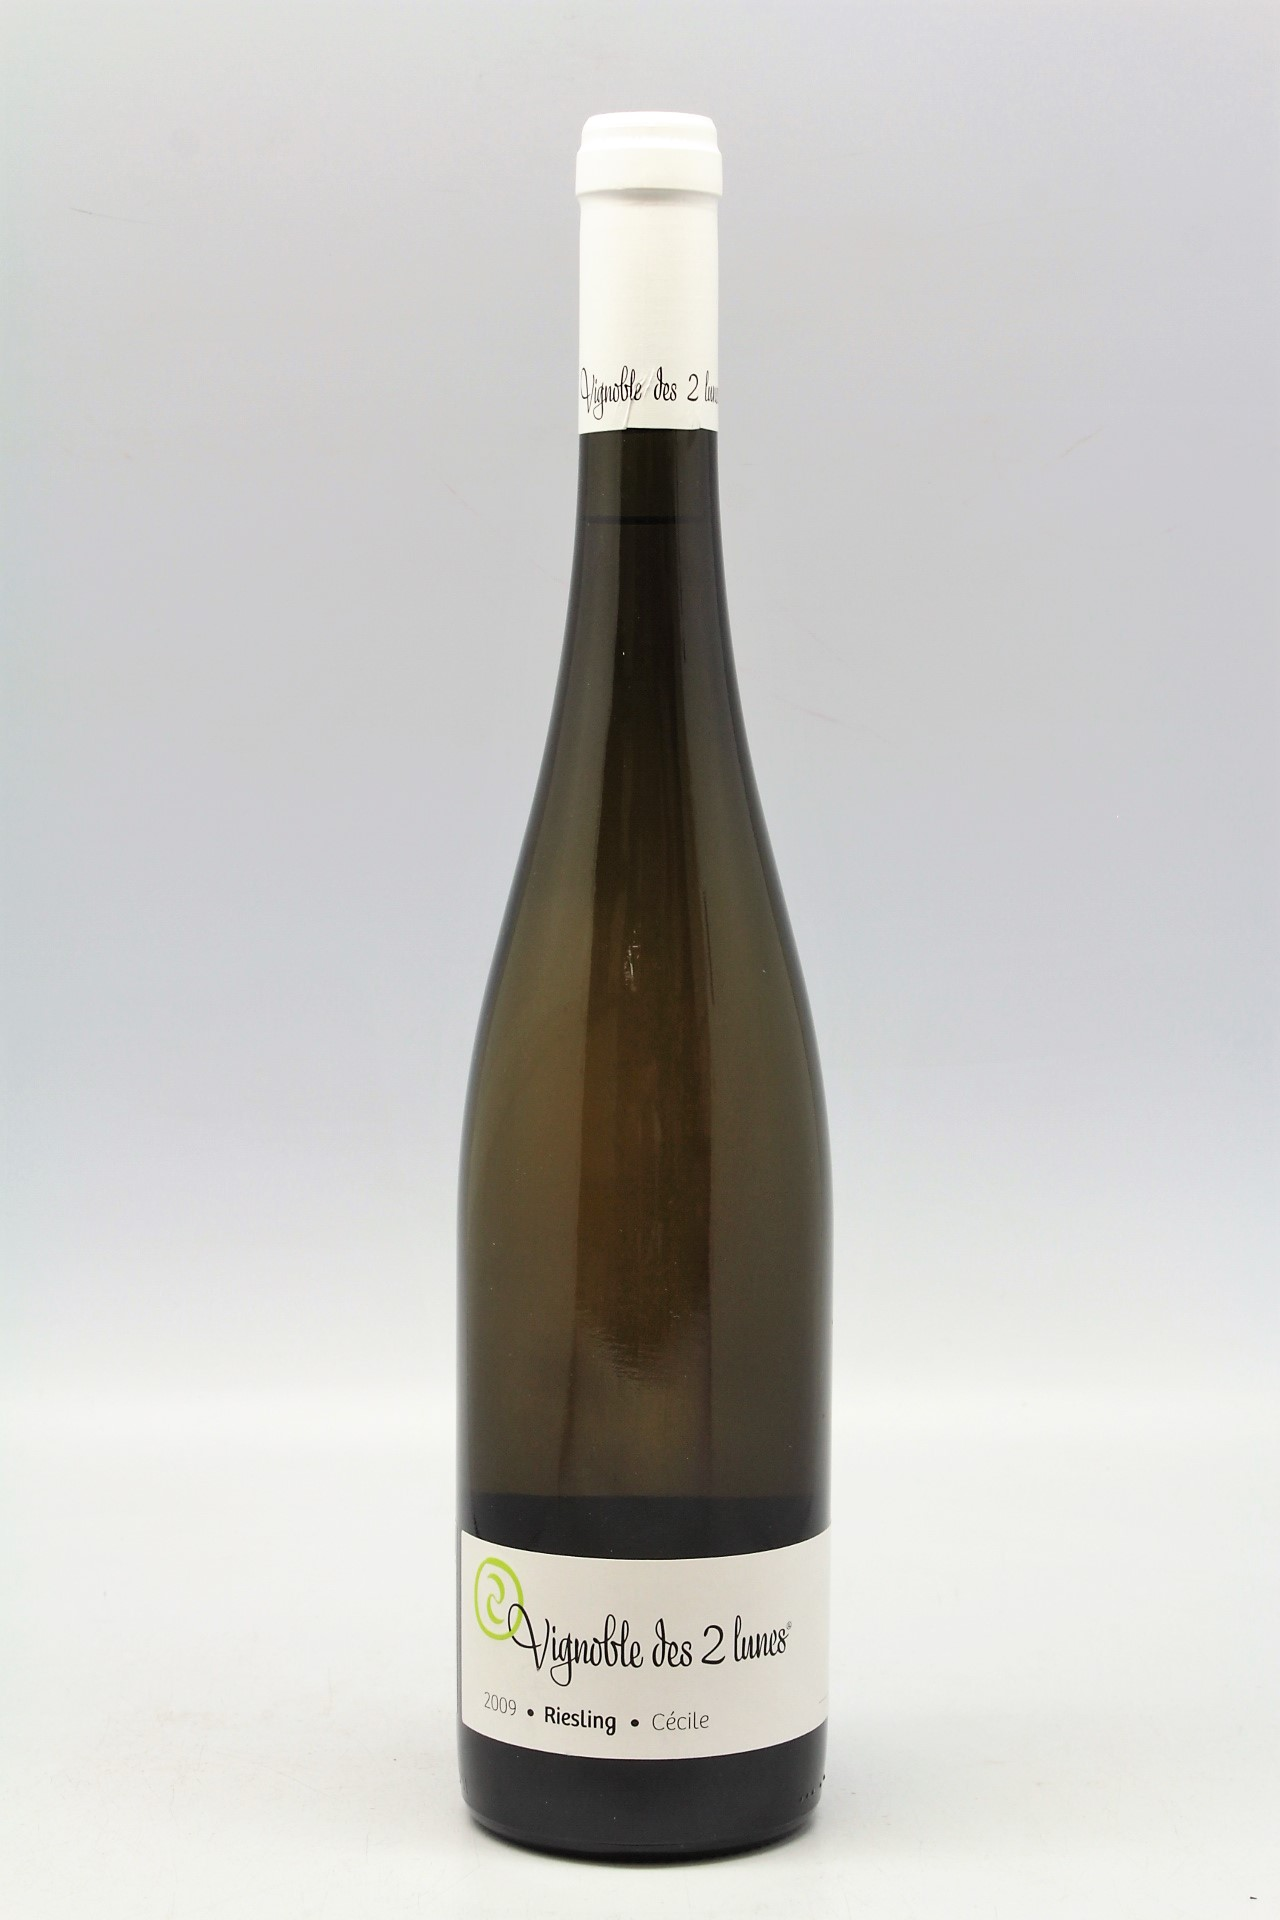 Millesimes alsace riesling